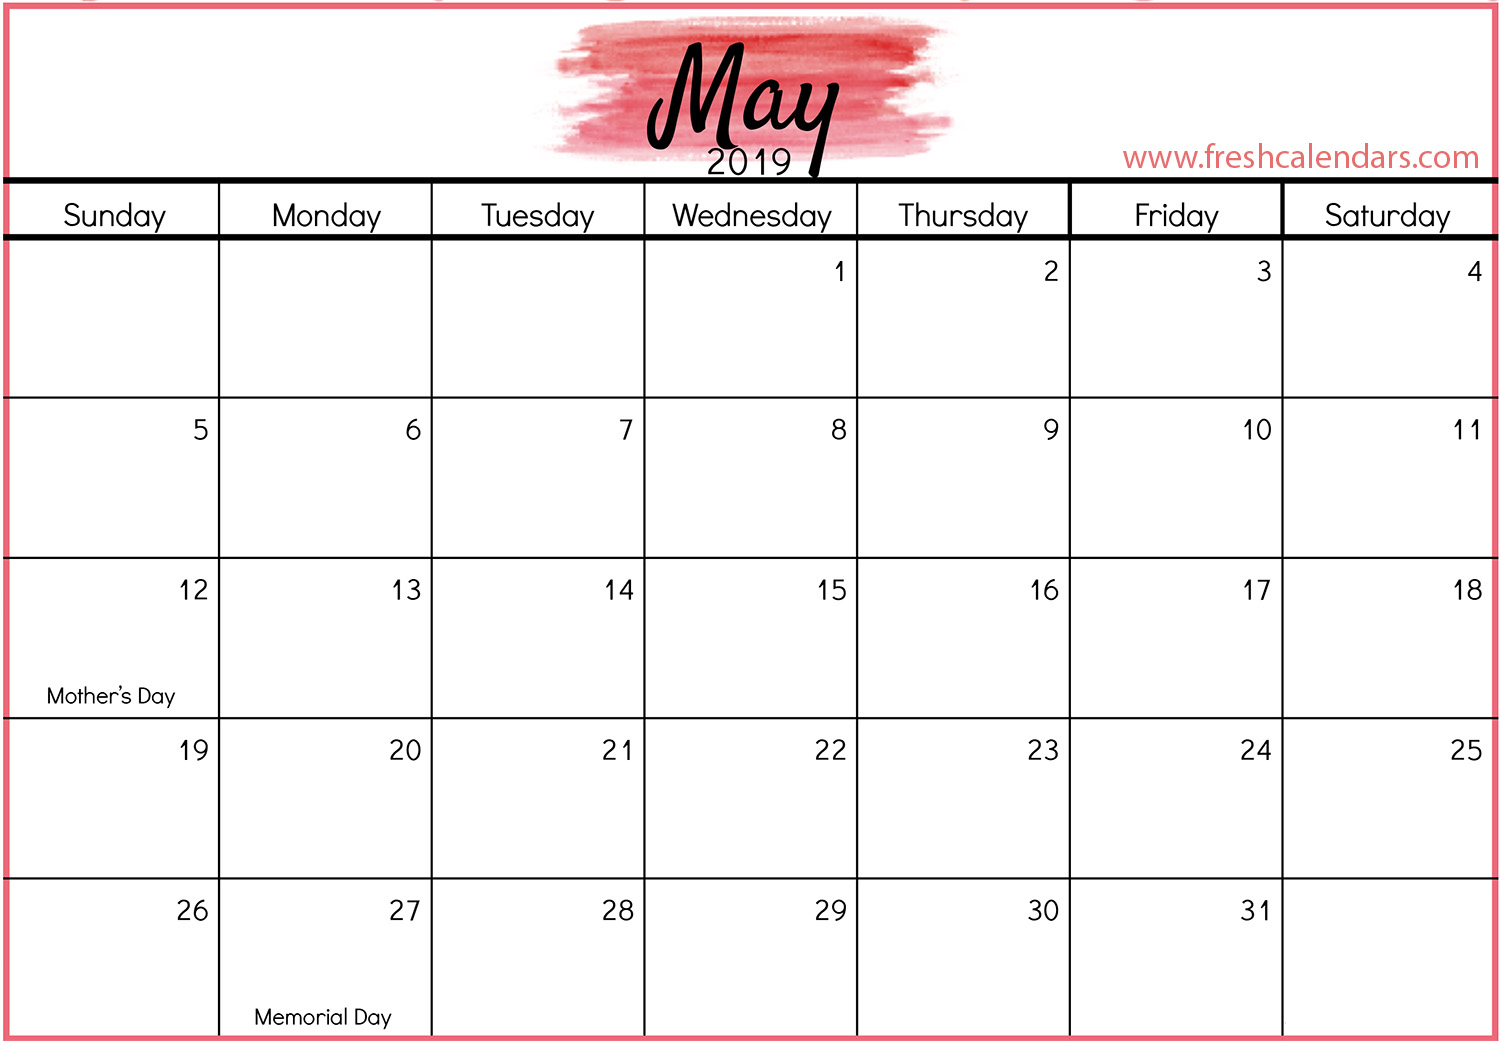 May 2019 Calendar Memorial Day May 2019 Calendar Printable   Fresh Calendars